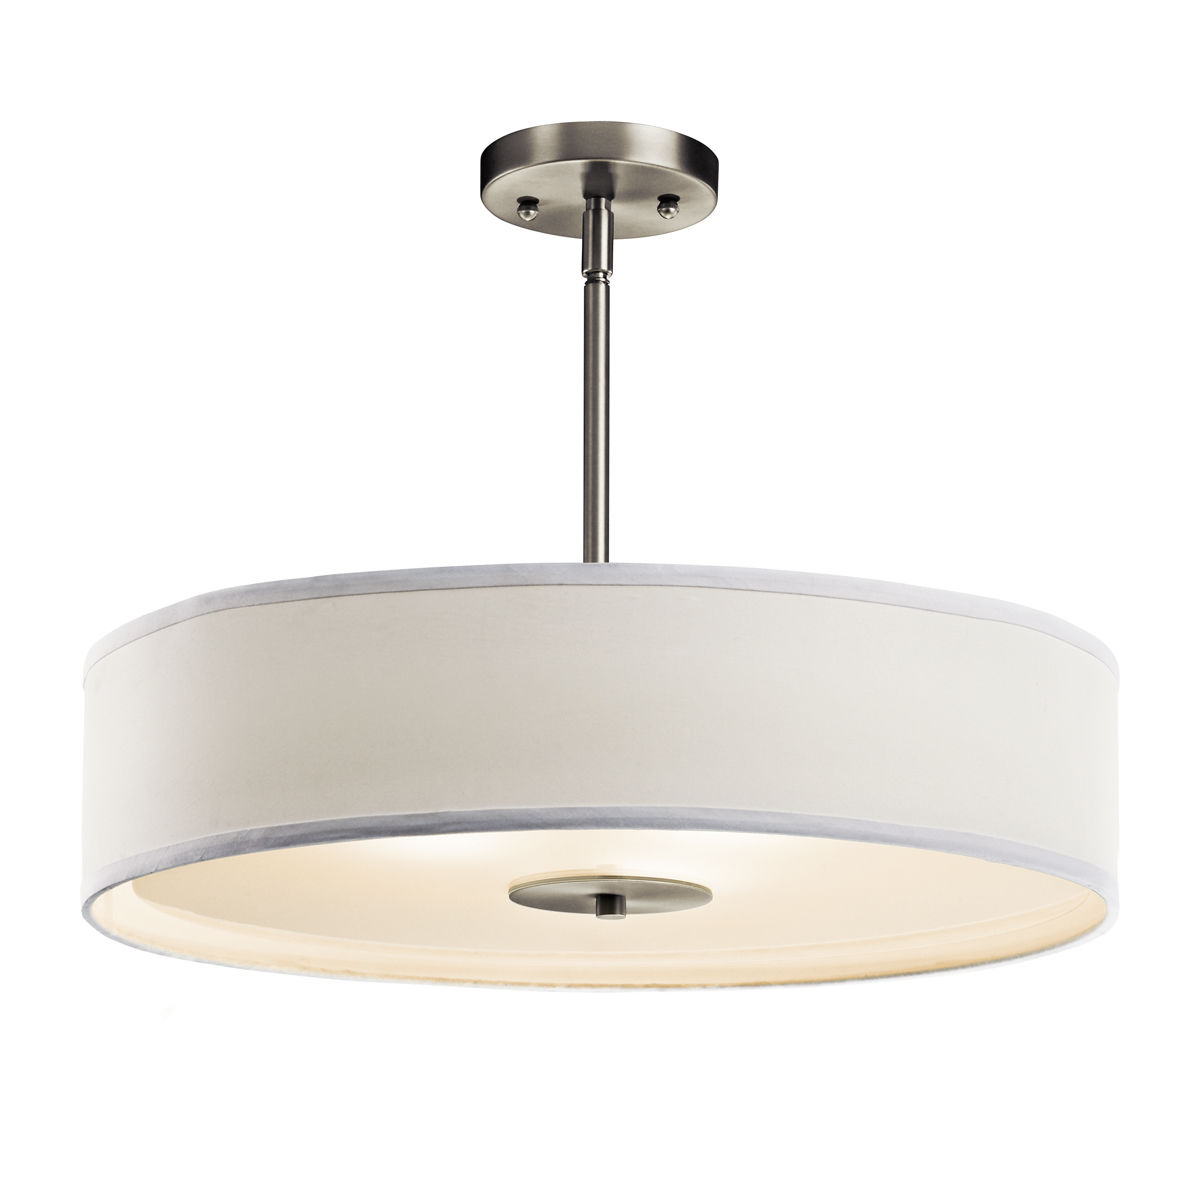 Kichler 42121ni brushed nickel 3 light 20 wide convertible pendant kichler 42121ni brushed nickel 3 light 20 wide convertible pendant semi flush ceiling fixture with drum fabric shade lightingdirect aloadofball Choice Image